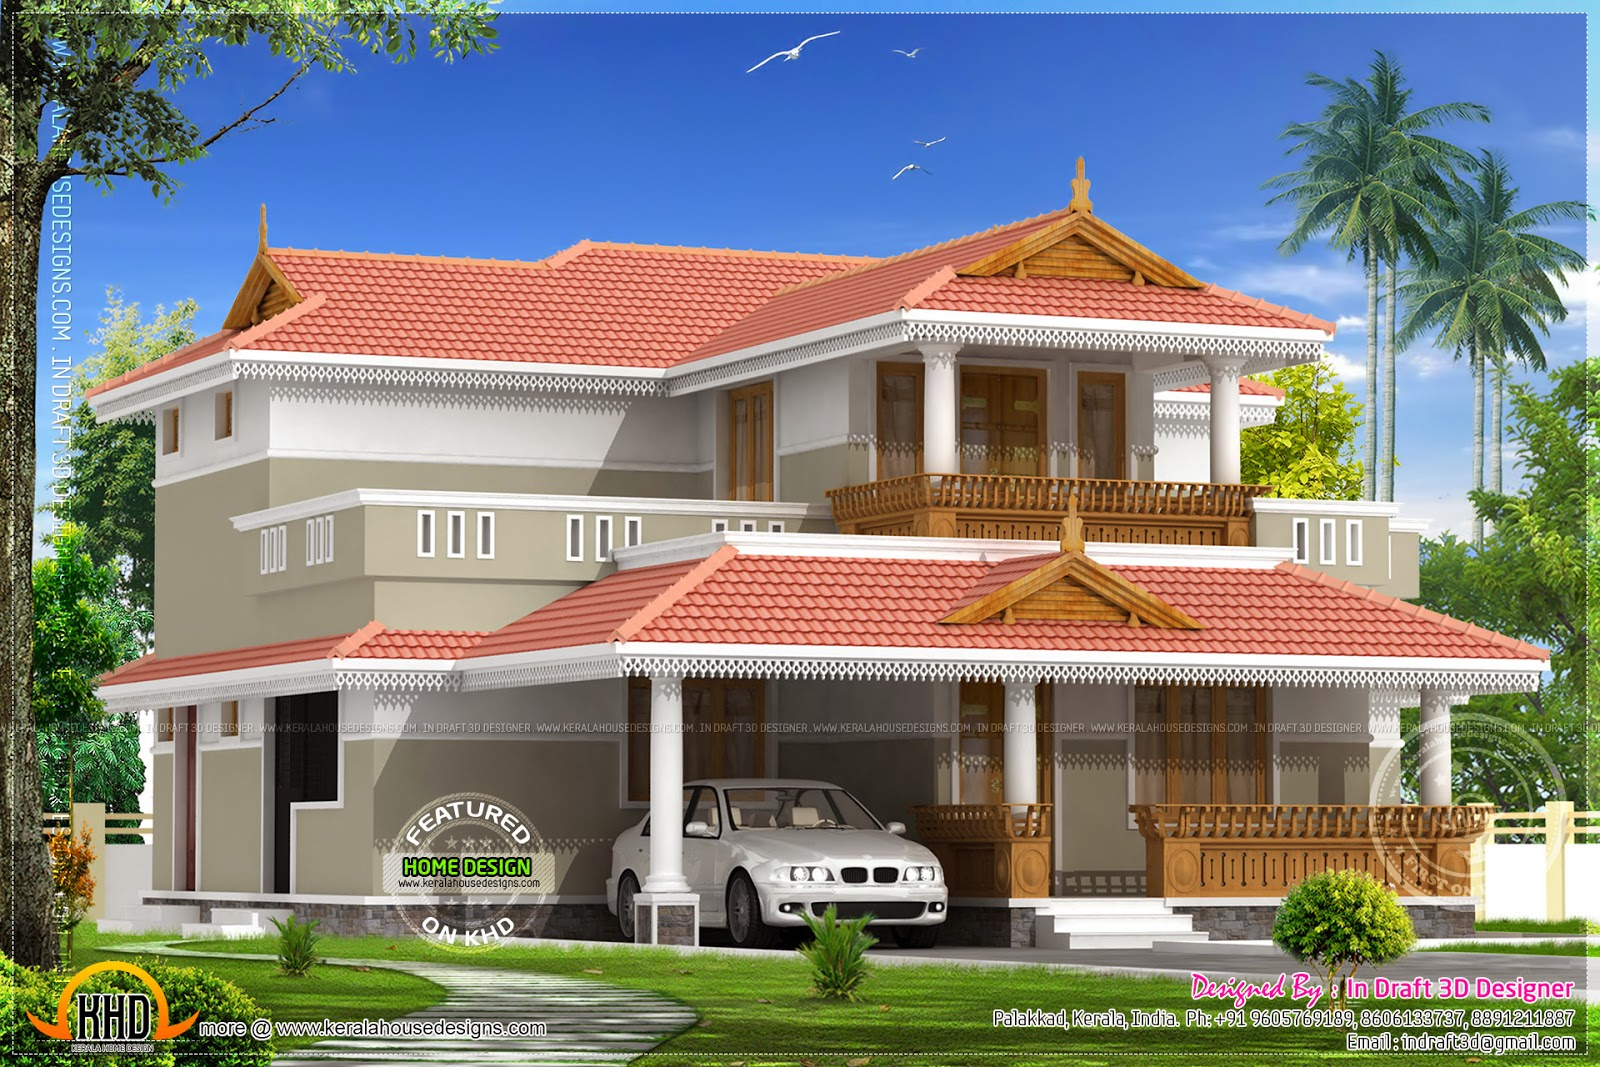 Kerala model house plans with photos joy studio design for Kerala house models photos